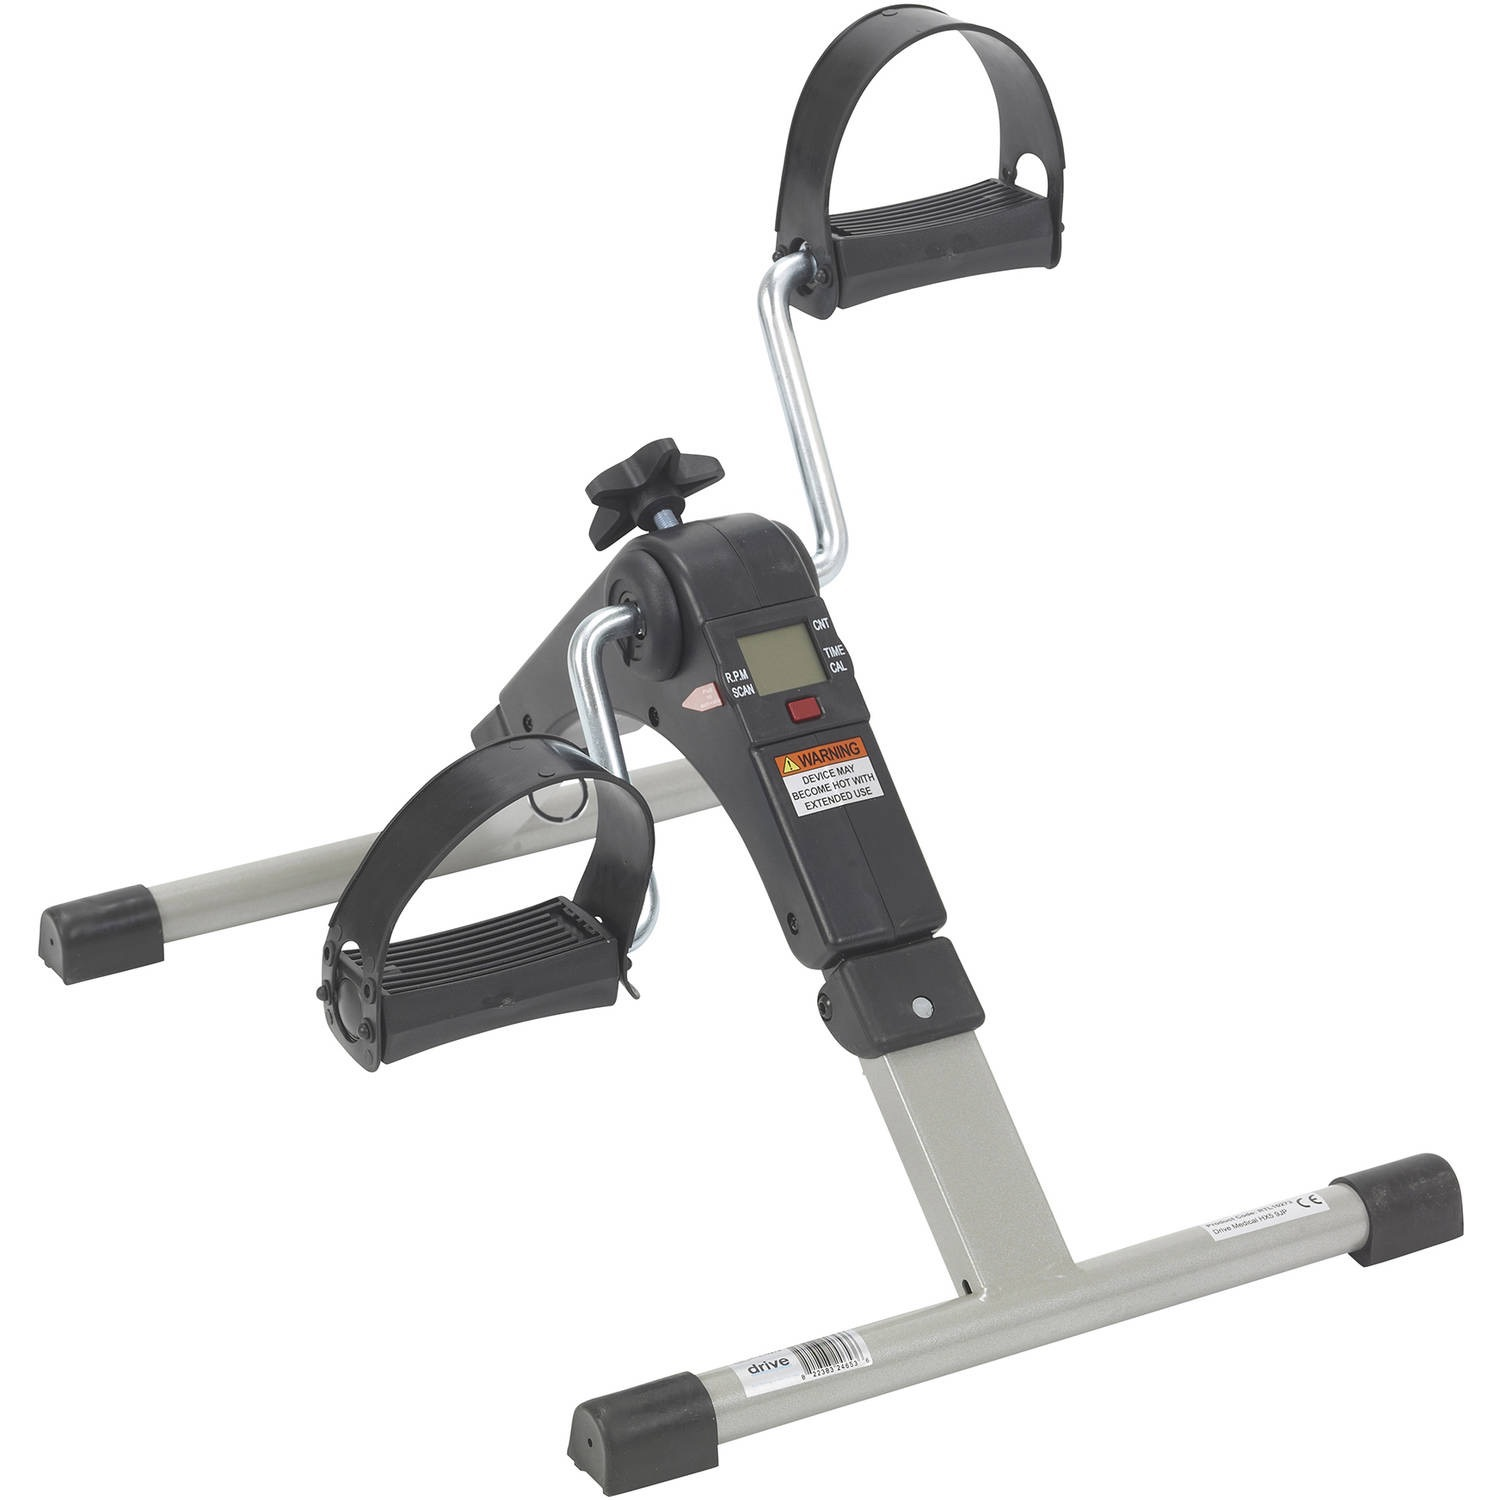 Pedal Exerciser with Digital Display. On Sale. While stocks Last